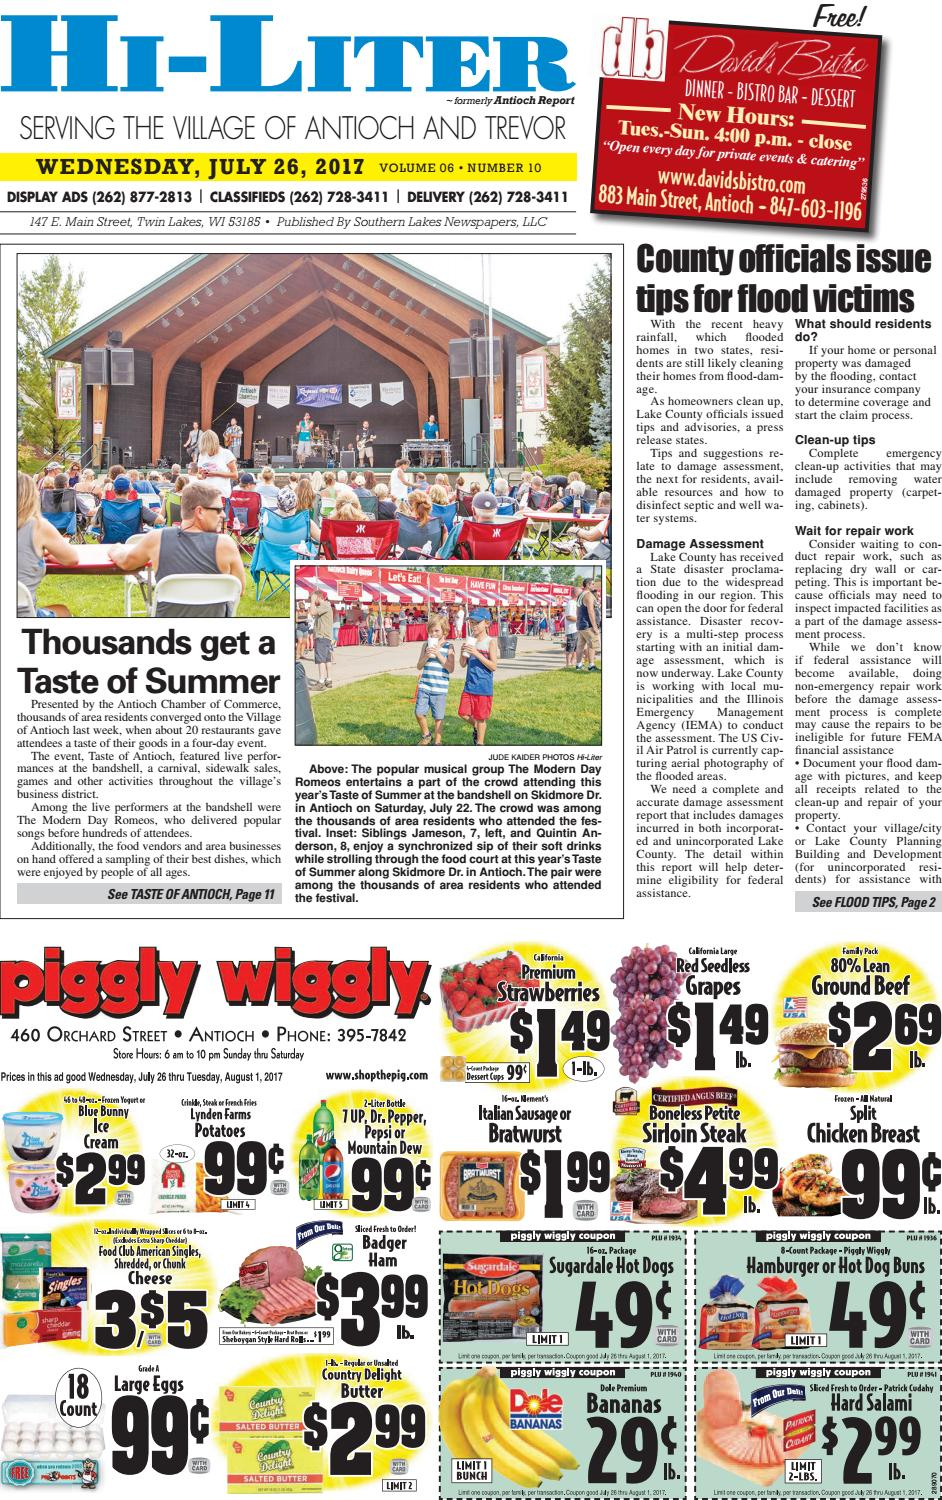 Ilhl 7 26 17 by Southern Lakes Newspapers / Rock Valley